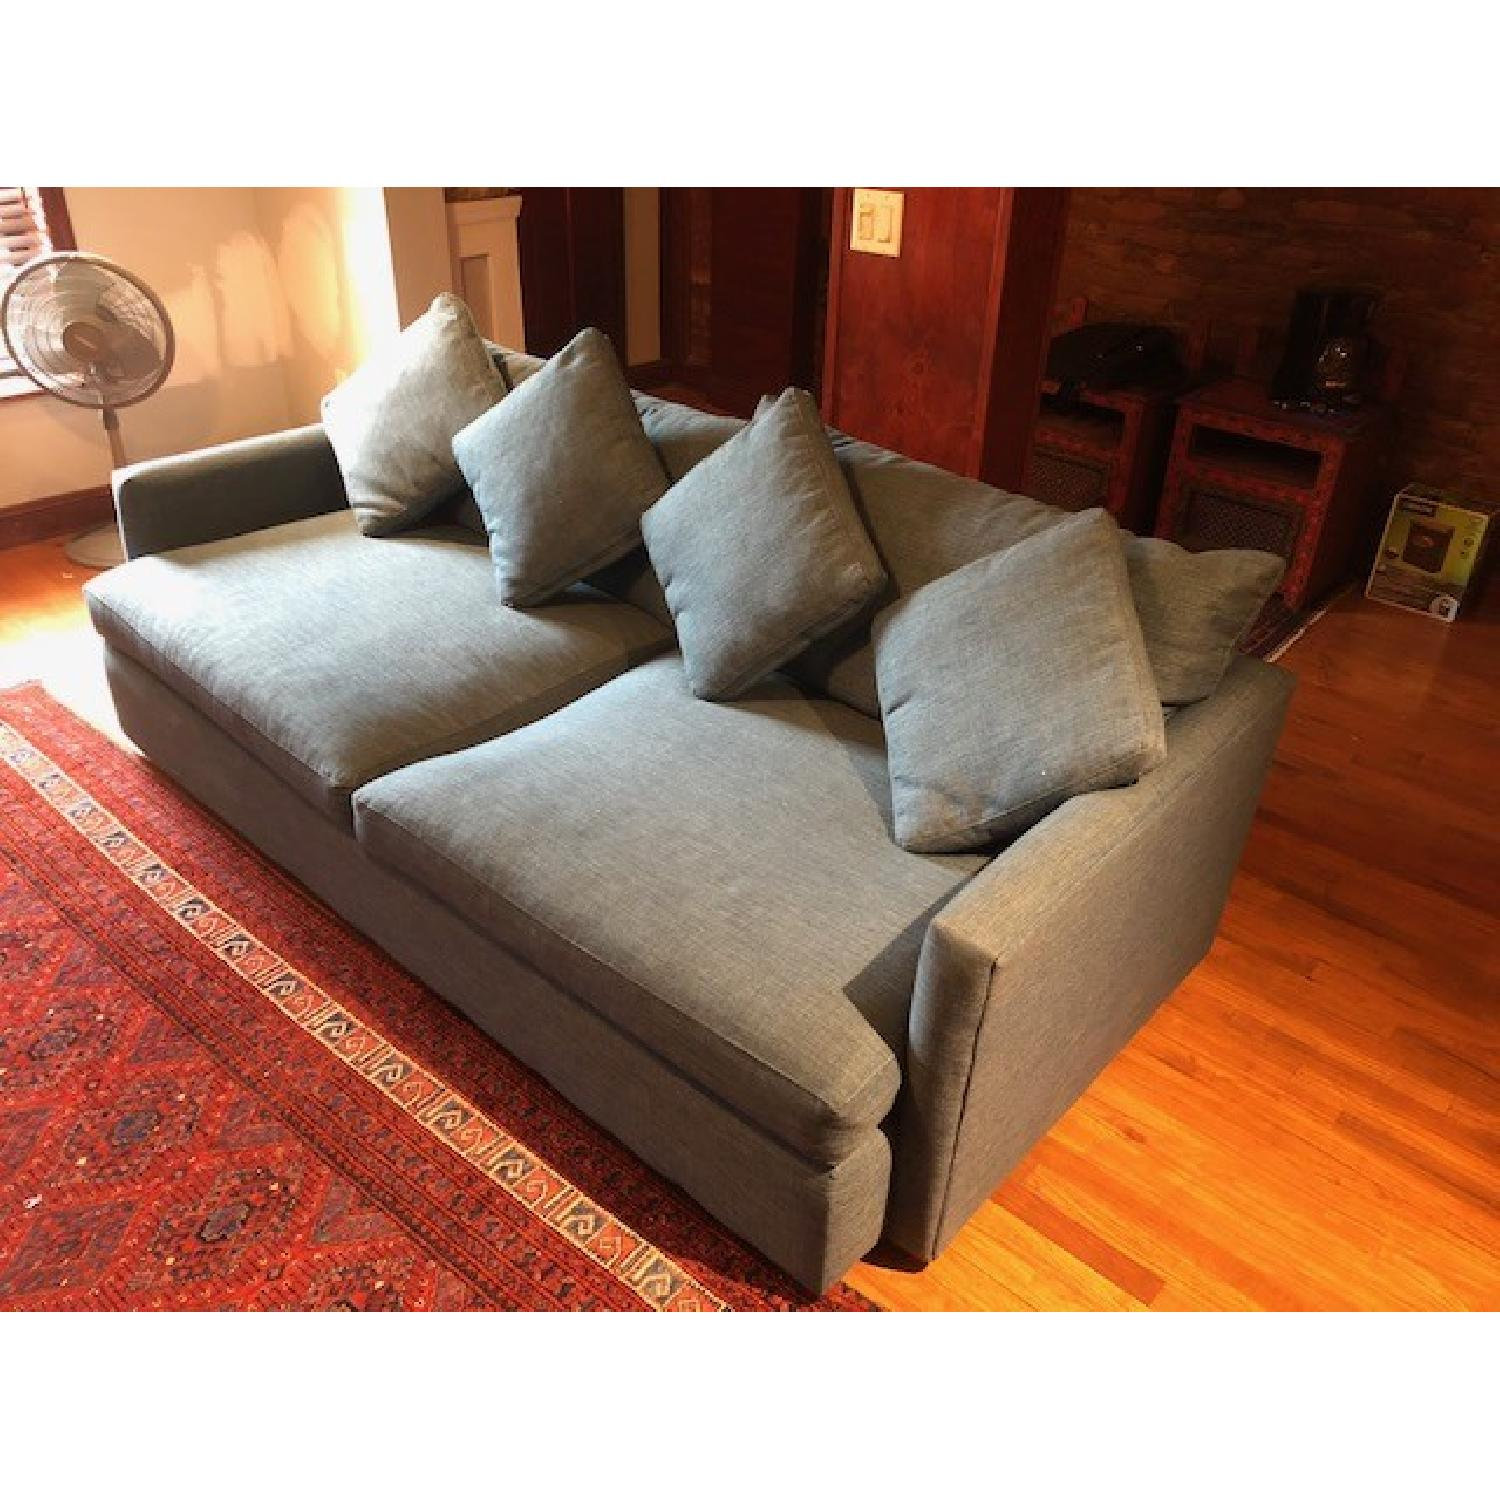 Crate & Barrel Lounge II Apartment Sofa & Ottoman-14